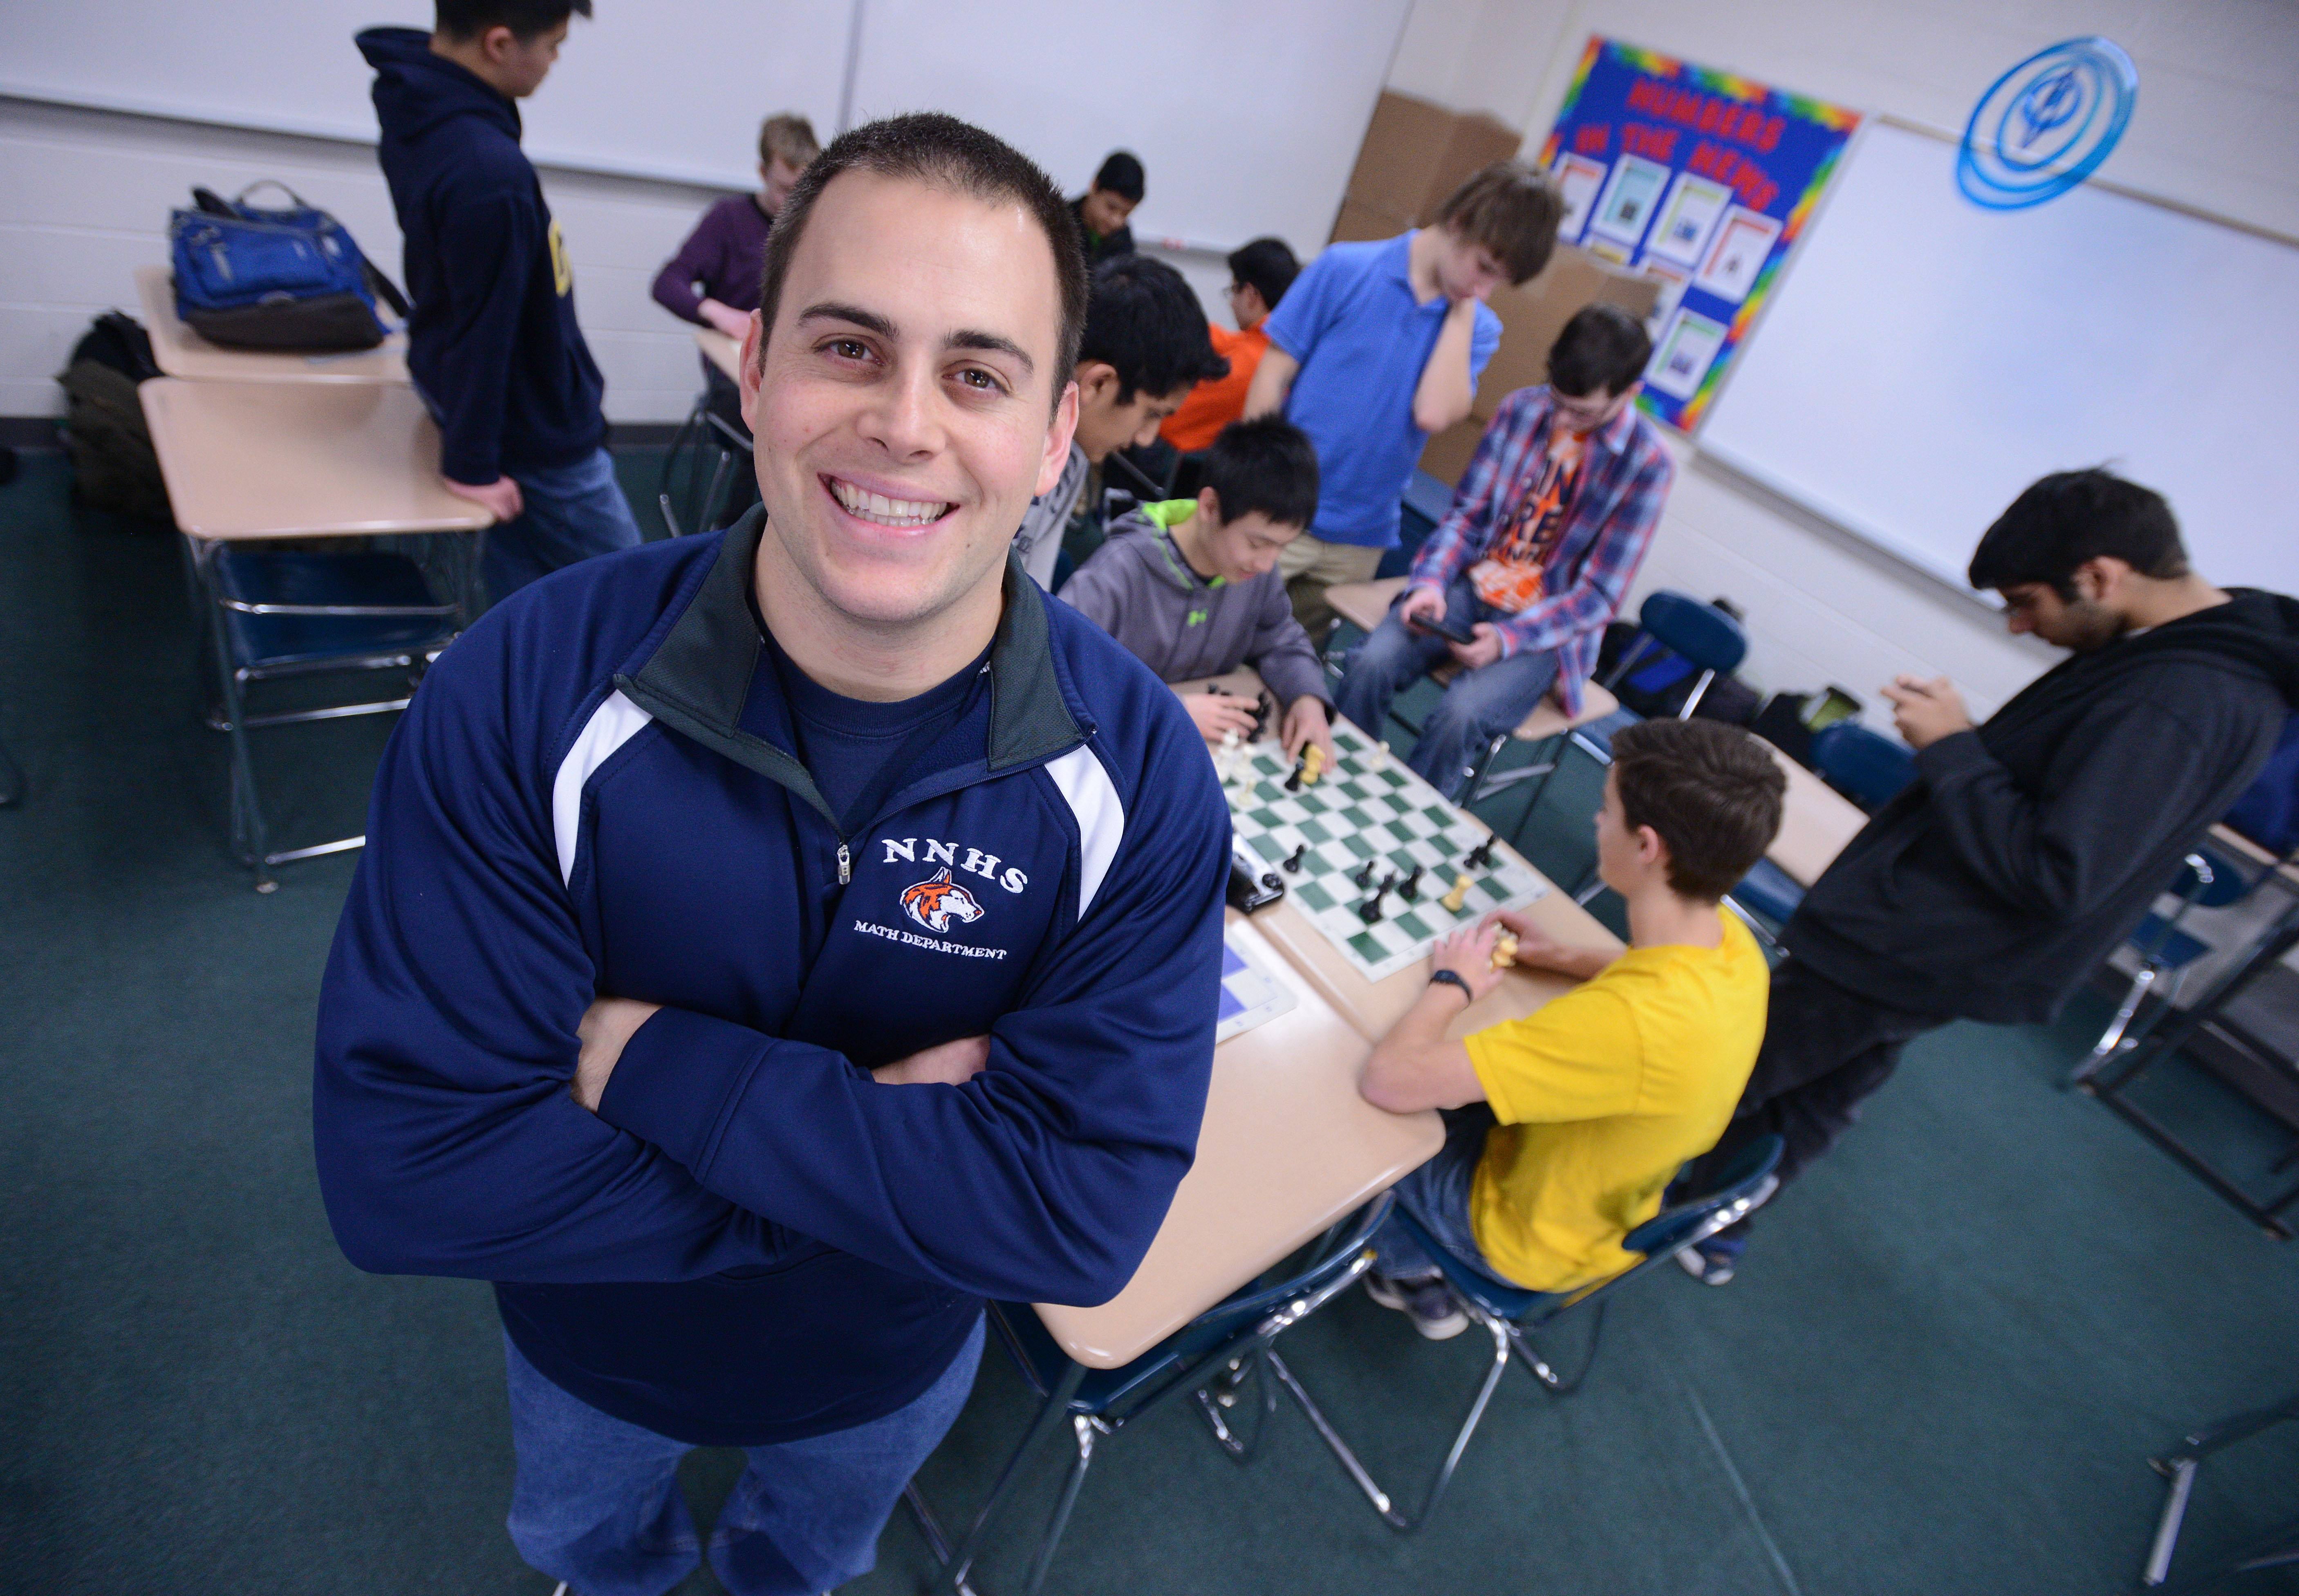 Jeff DiOrio and his 10-member Naperville North chess team have one final practice before heading to Peoria to defend their state crown.